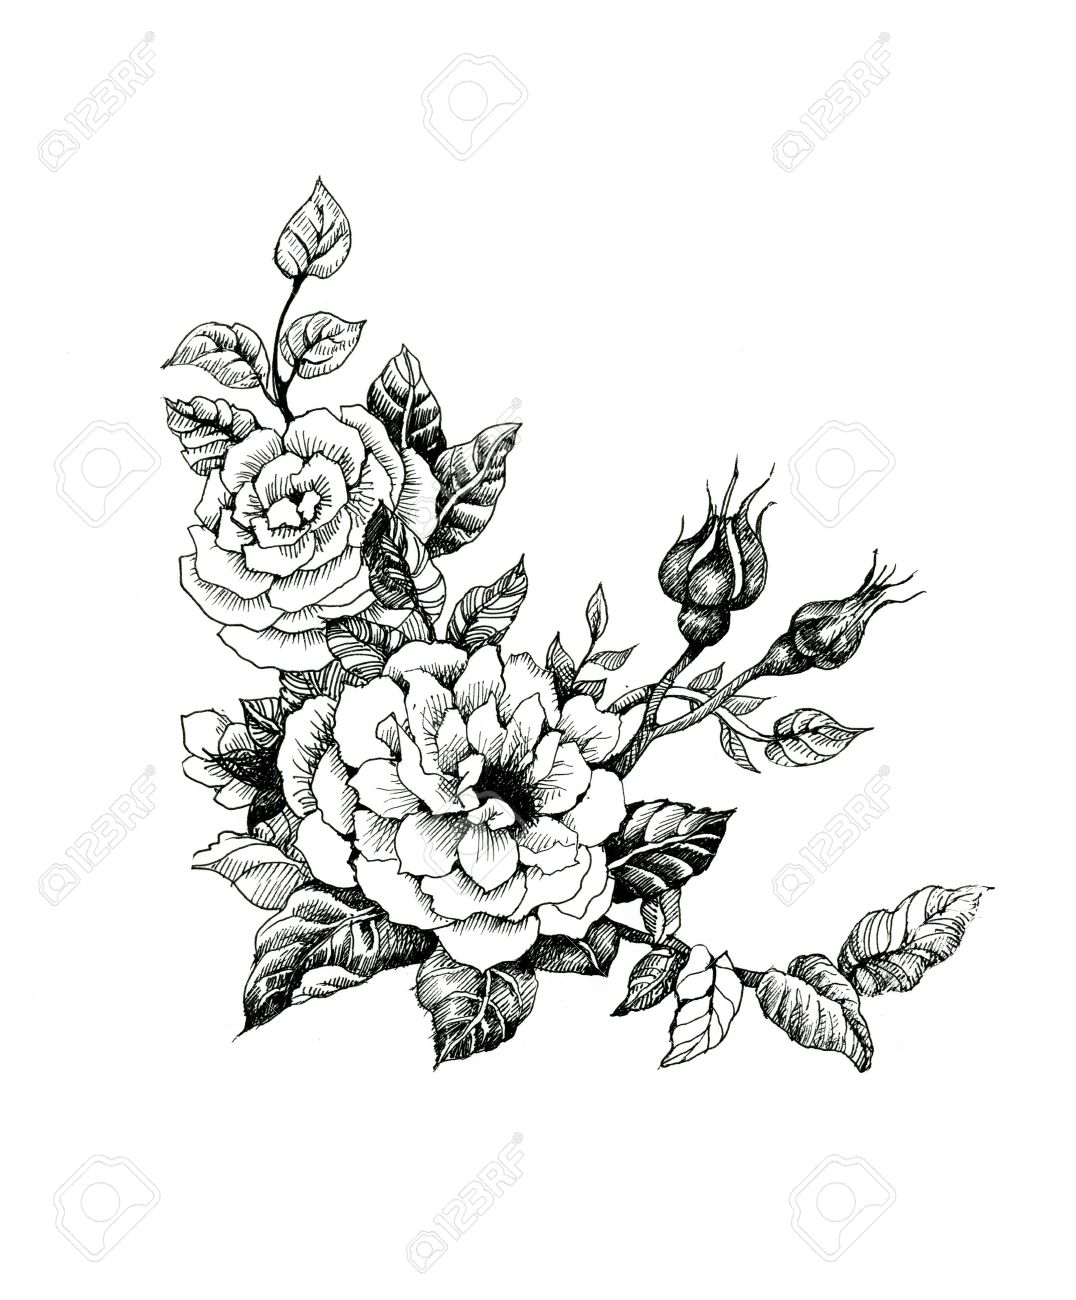 Watercolor Flowers Illustration In Black And White Royalty Free